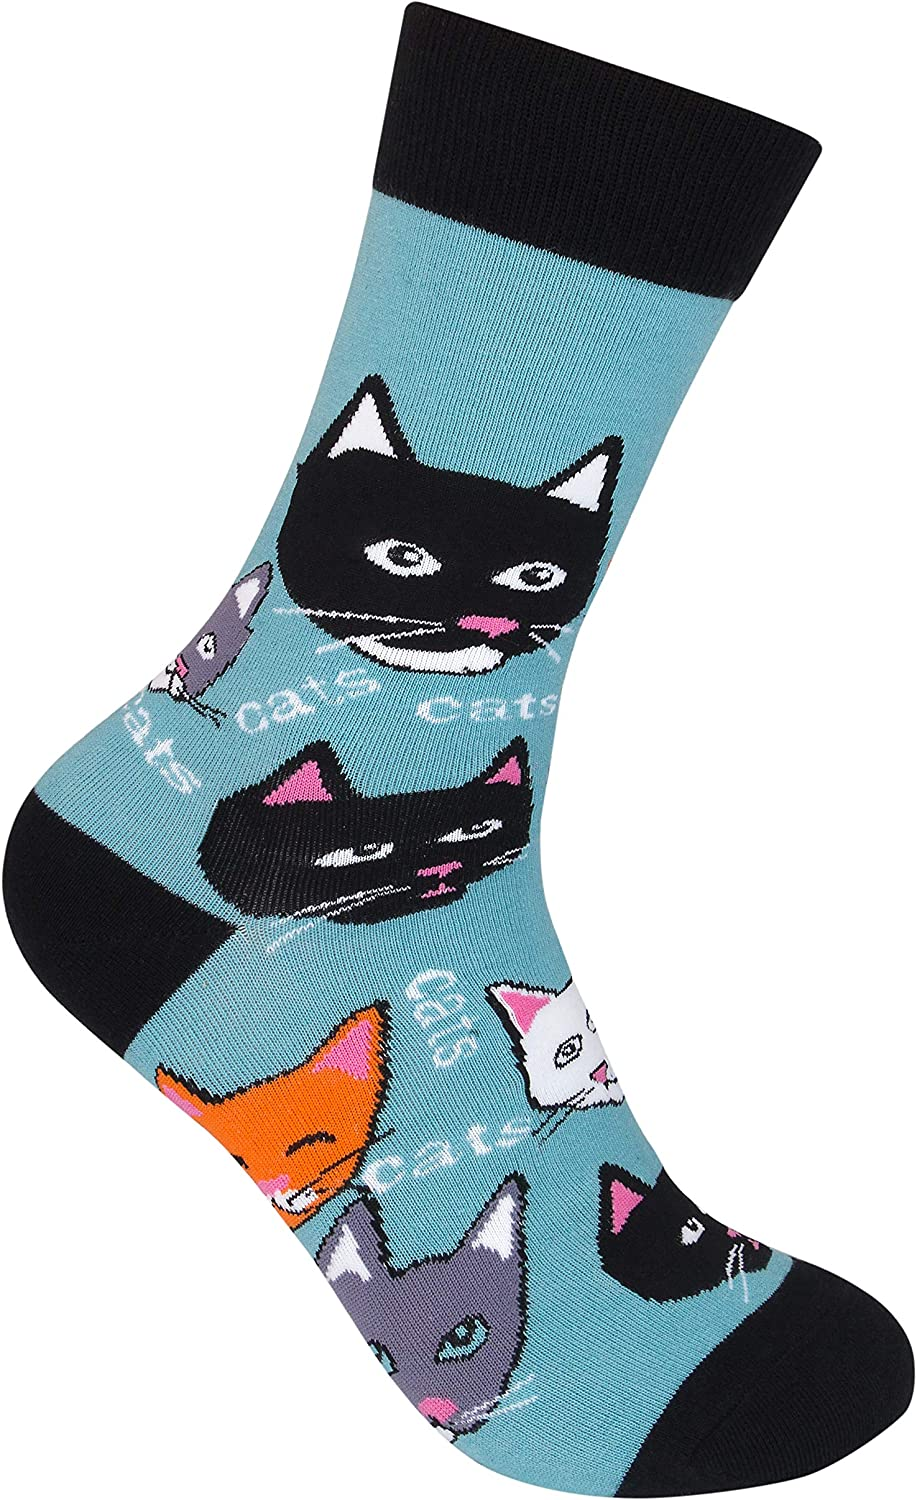 Pet All The Cats Socks Funny Cat Face Hilarious Kitten Novelty Footwear Crazy Dog Tshirts